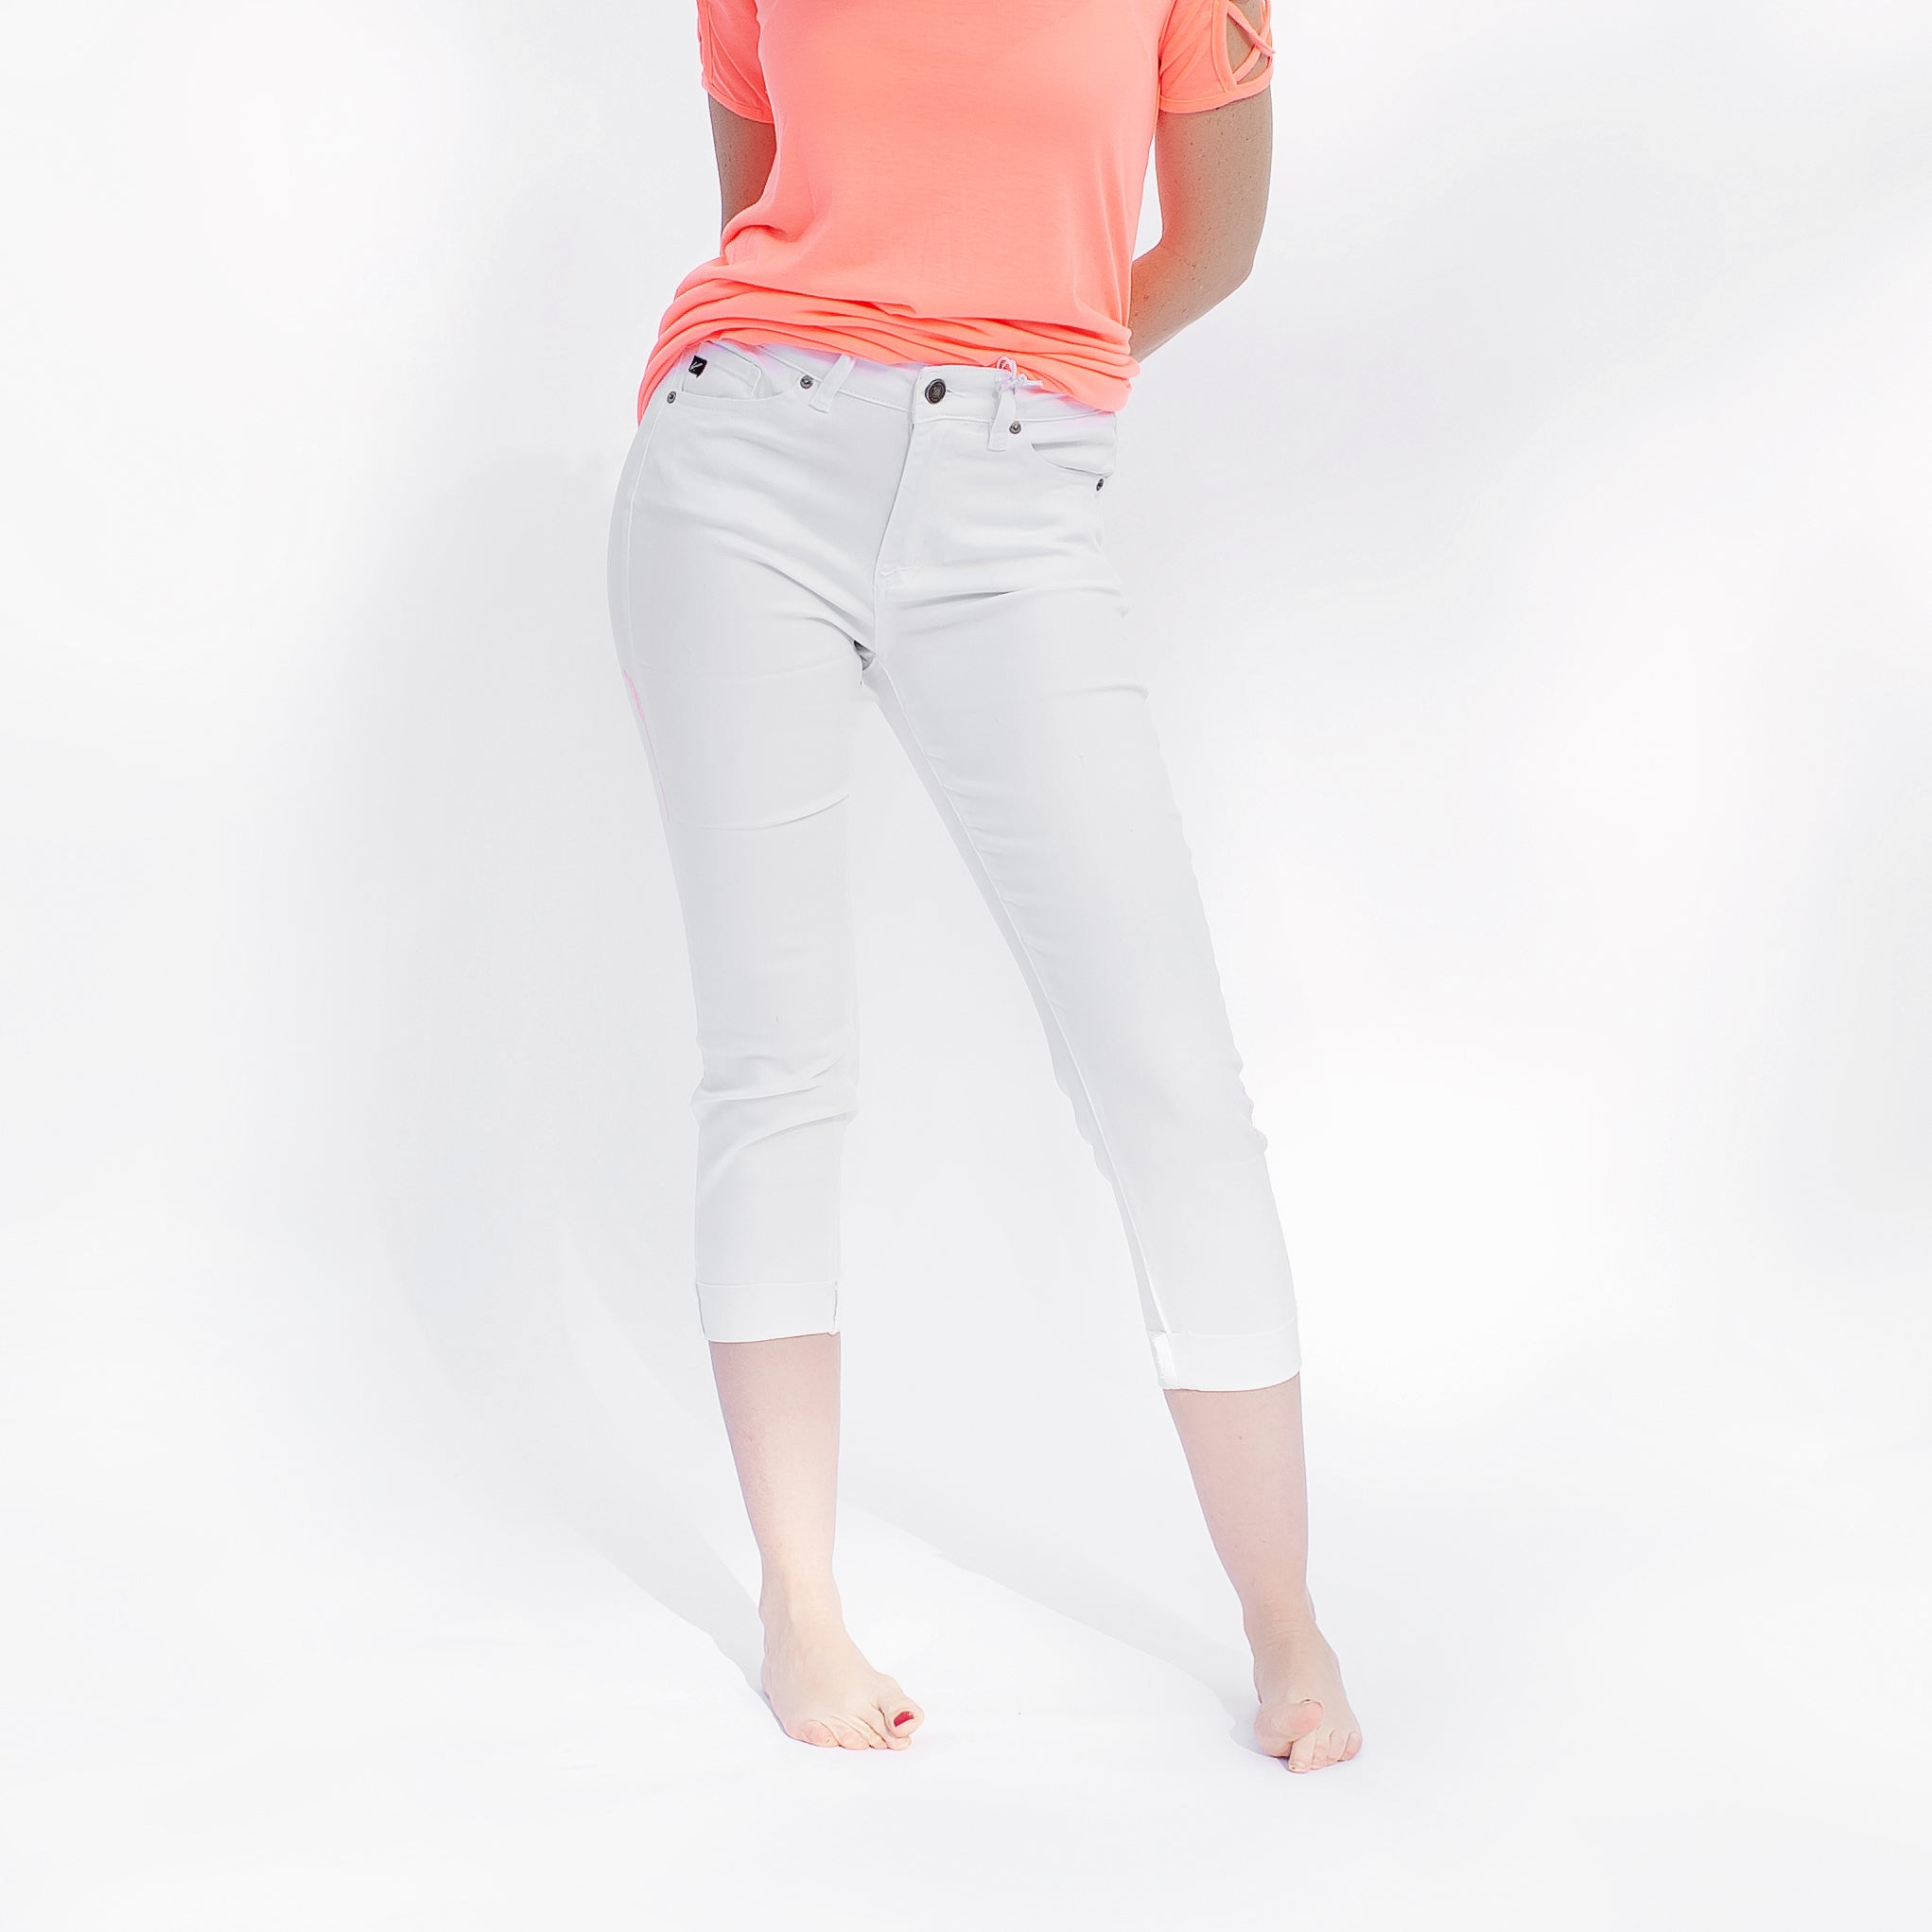 Kancan White Gemma High Rise Cropped Skinny Jeans *Final Sale*